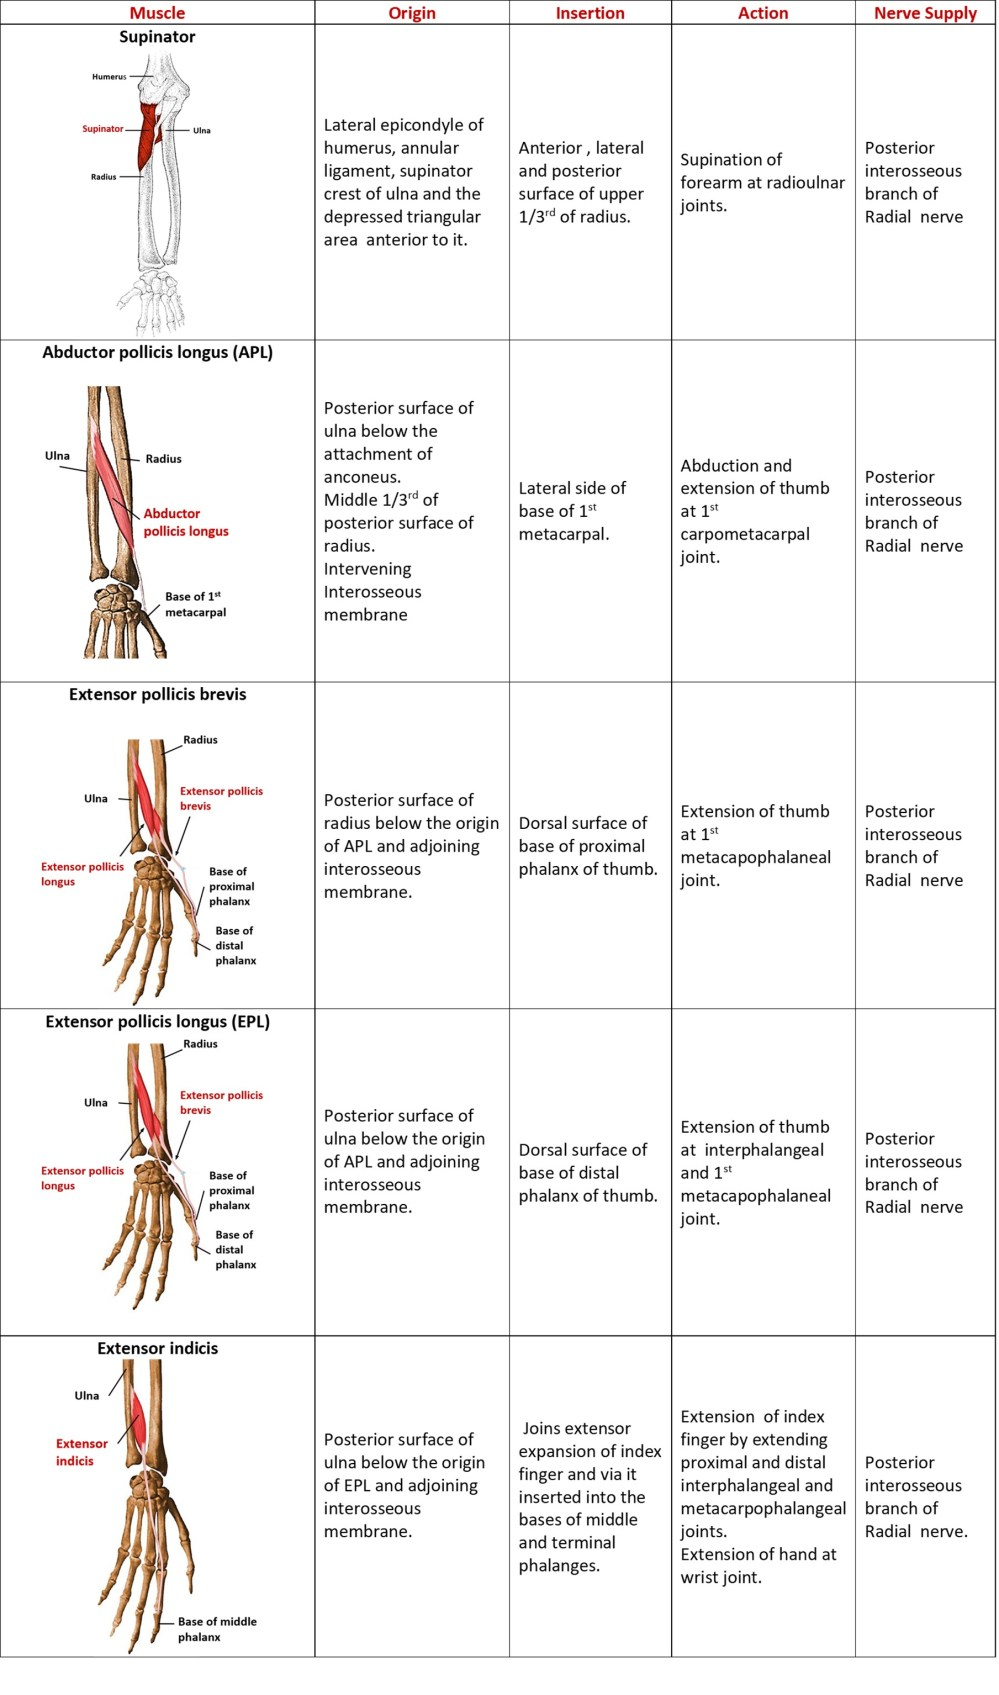 deep muscles of extensor compartment